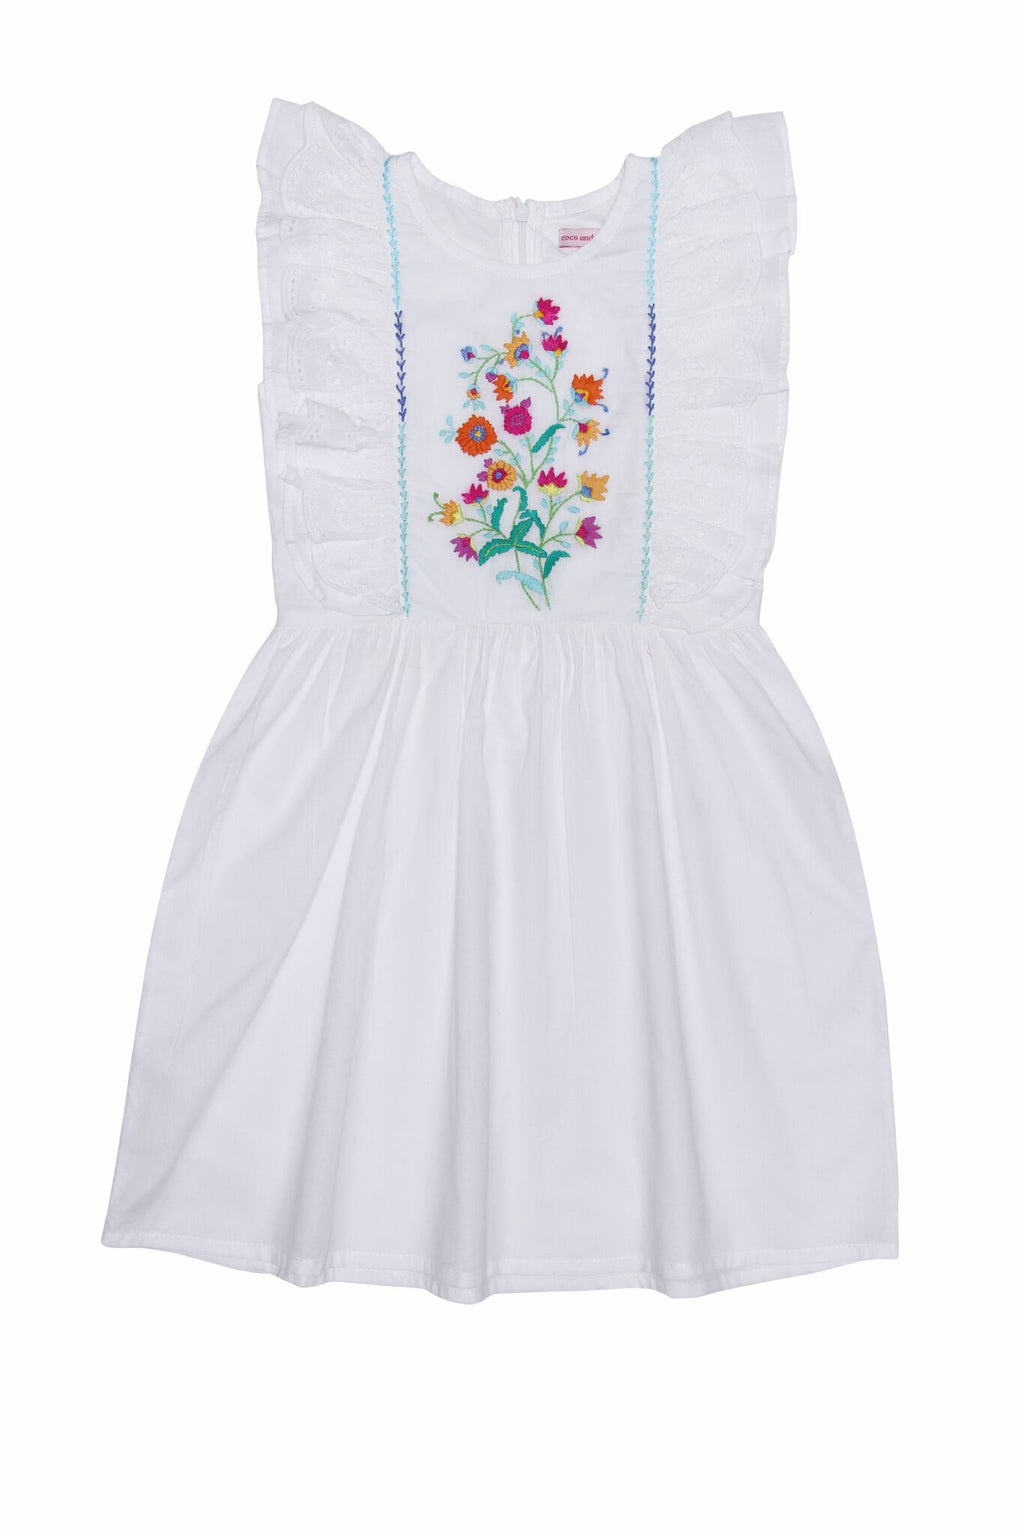 S18 Coco And Ginger Viola Dress Eggshell with Hand Stitch